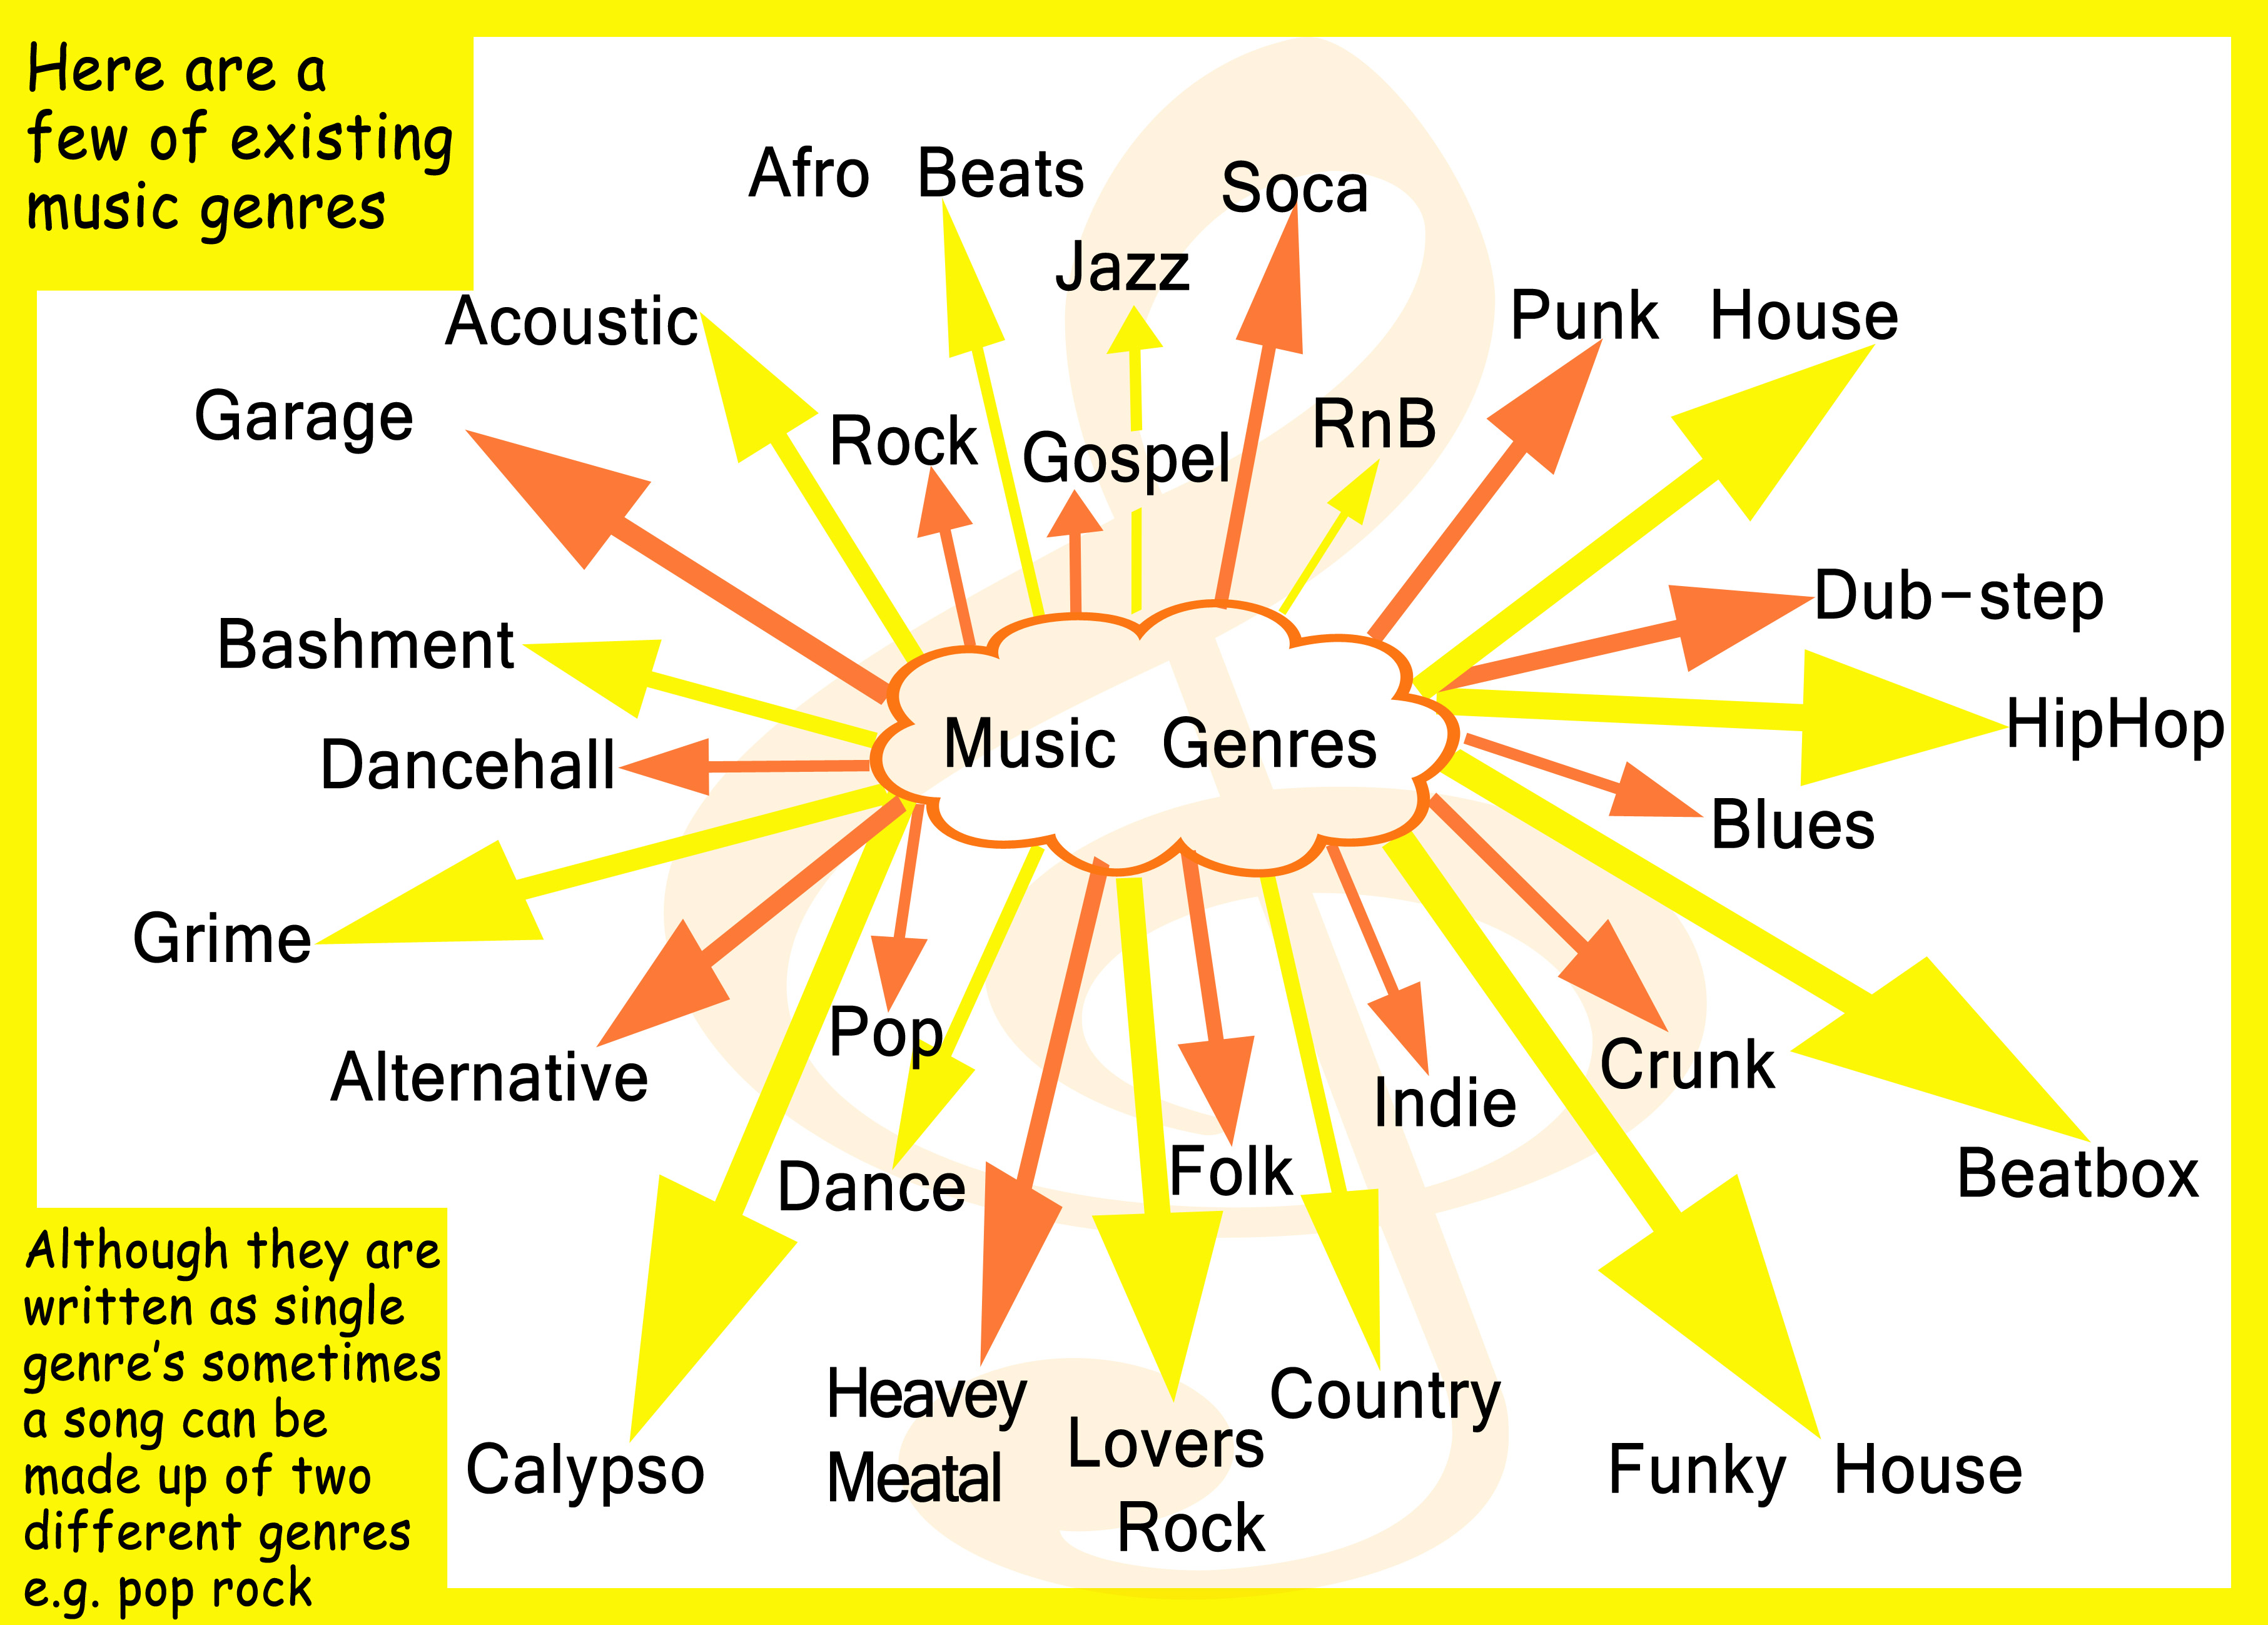 Musical genres for House music styles